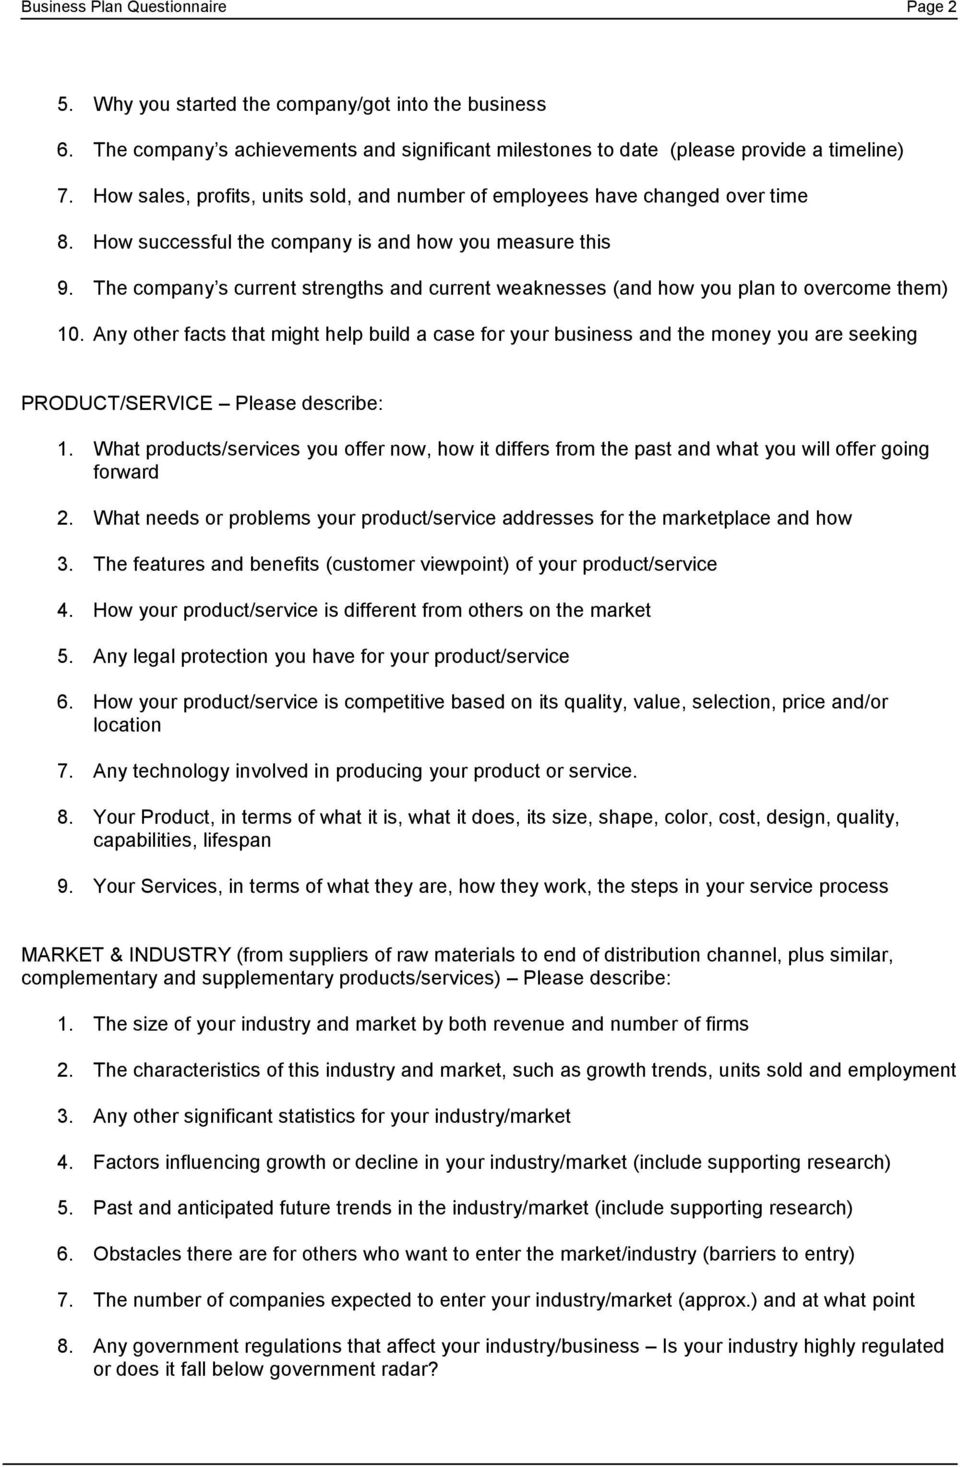 The company s current strengths and current weaknesses (and how you plan to overcome them) 10.